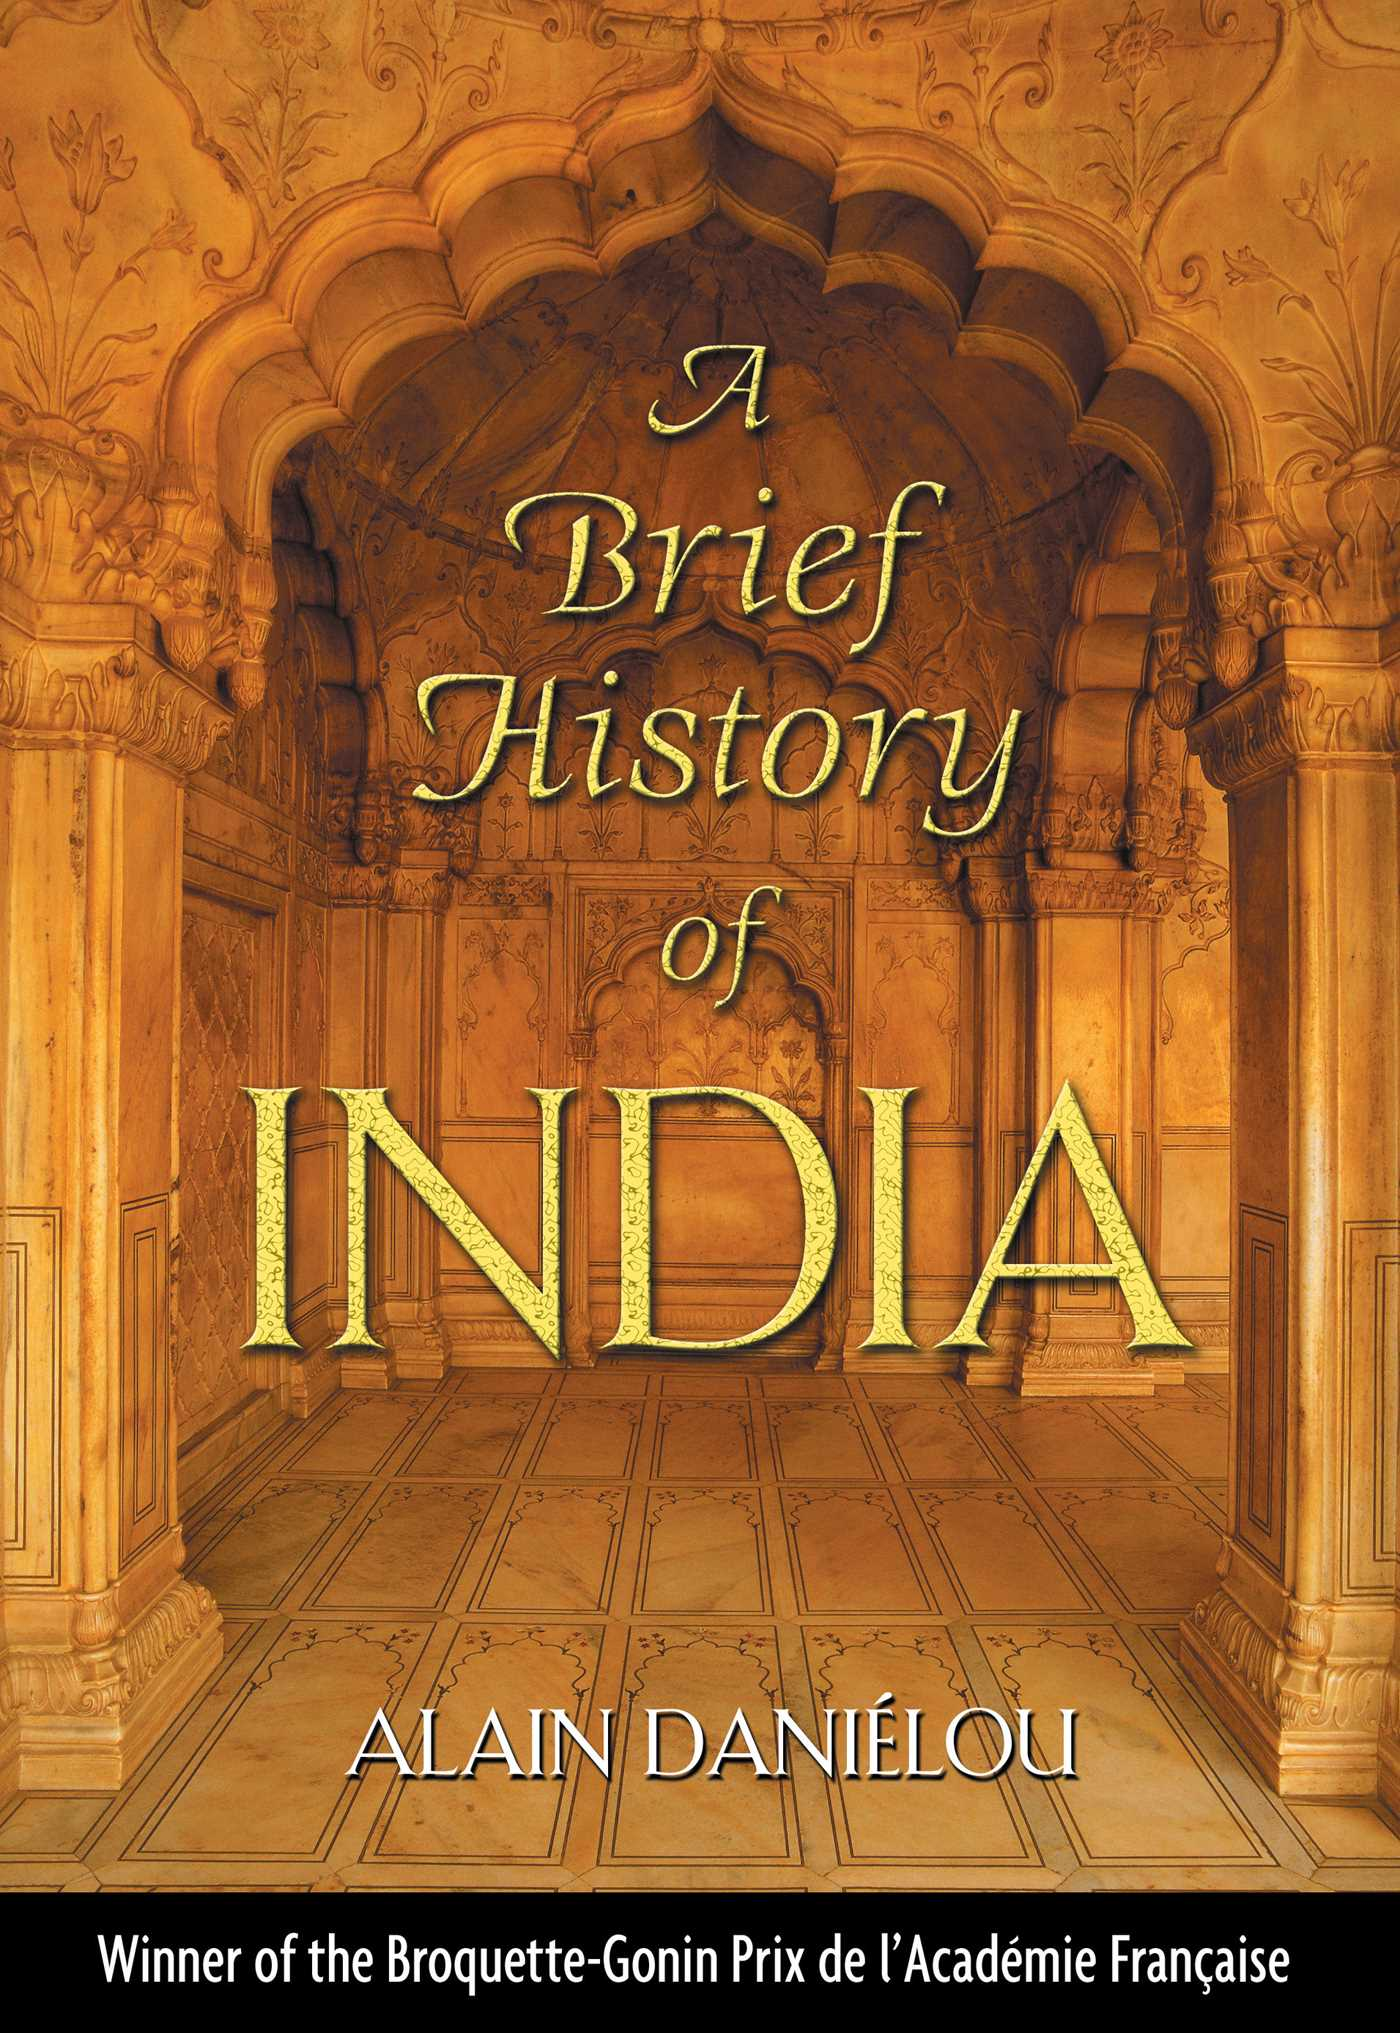 A brief history of india 9781594777943 hr